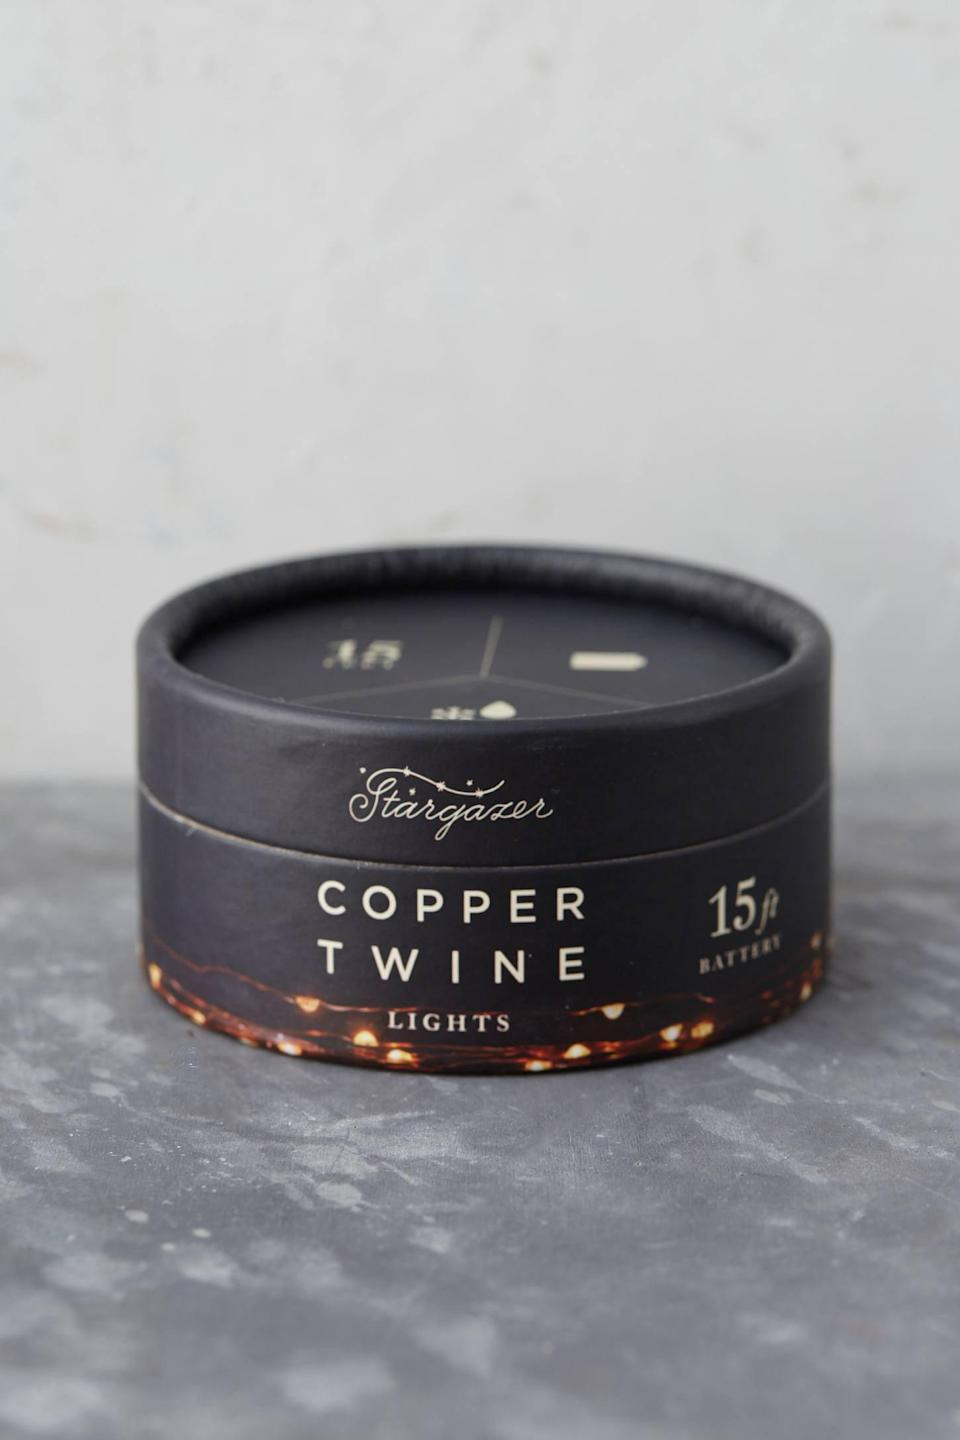 """<p>Illuminate your home with the <a href=""""https://www.popsugar.com/buy/Stargazer-Copper-Twine-Lights-Battery-Powered-490600?p_name=Stargazer%20Copper%20Twine%20Lights%2C%20Battery%20Powered&retailer=anthropologie.com&pid=490600&price=18&evar1=casa%3Aus&evar9=46615300&evar98=https%3A%2F%2Fwww.popsugar.com%2Fhome%2Fphoto-gallery%2F46615300%2Fimage%2F46615472%2FStargazer-Copper-Twine-Lights-Battery-Powered&list1=shopping%2Canthropologie%2Choliday%2Cchristmas%2Cchristmas%20decorations%2Choliday%20decor%2Chome%20shopping&prop13=mobile&pdata=1"""" rel=""""nofollow noopener"""" class=""""link rapid-noclick-resp"""" target=""""_blank"""" data-ylk=""""slk:Stargazer Copper Twine Lights, Battery Powered"""">Stargazer Copper Twine Lights, Battery Powered</a> ($18). </p>"""